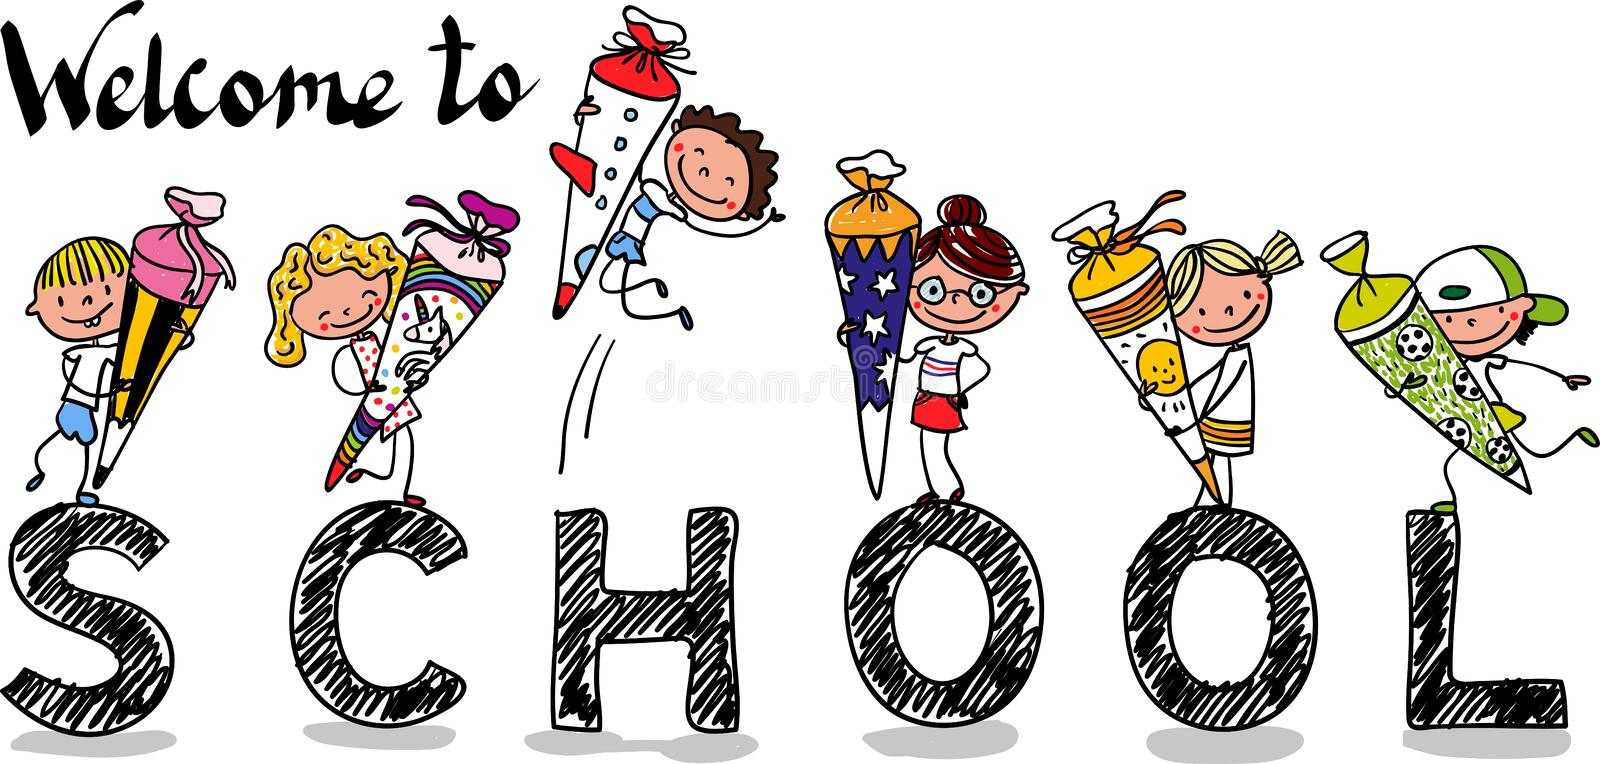 First Day of school - Happy schoolgirls and schoolboys with school cones - colorful hand drawn cartoon royalty free illustration